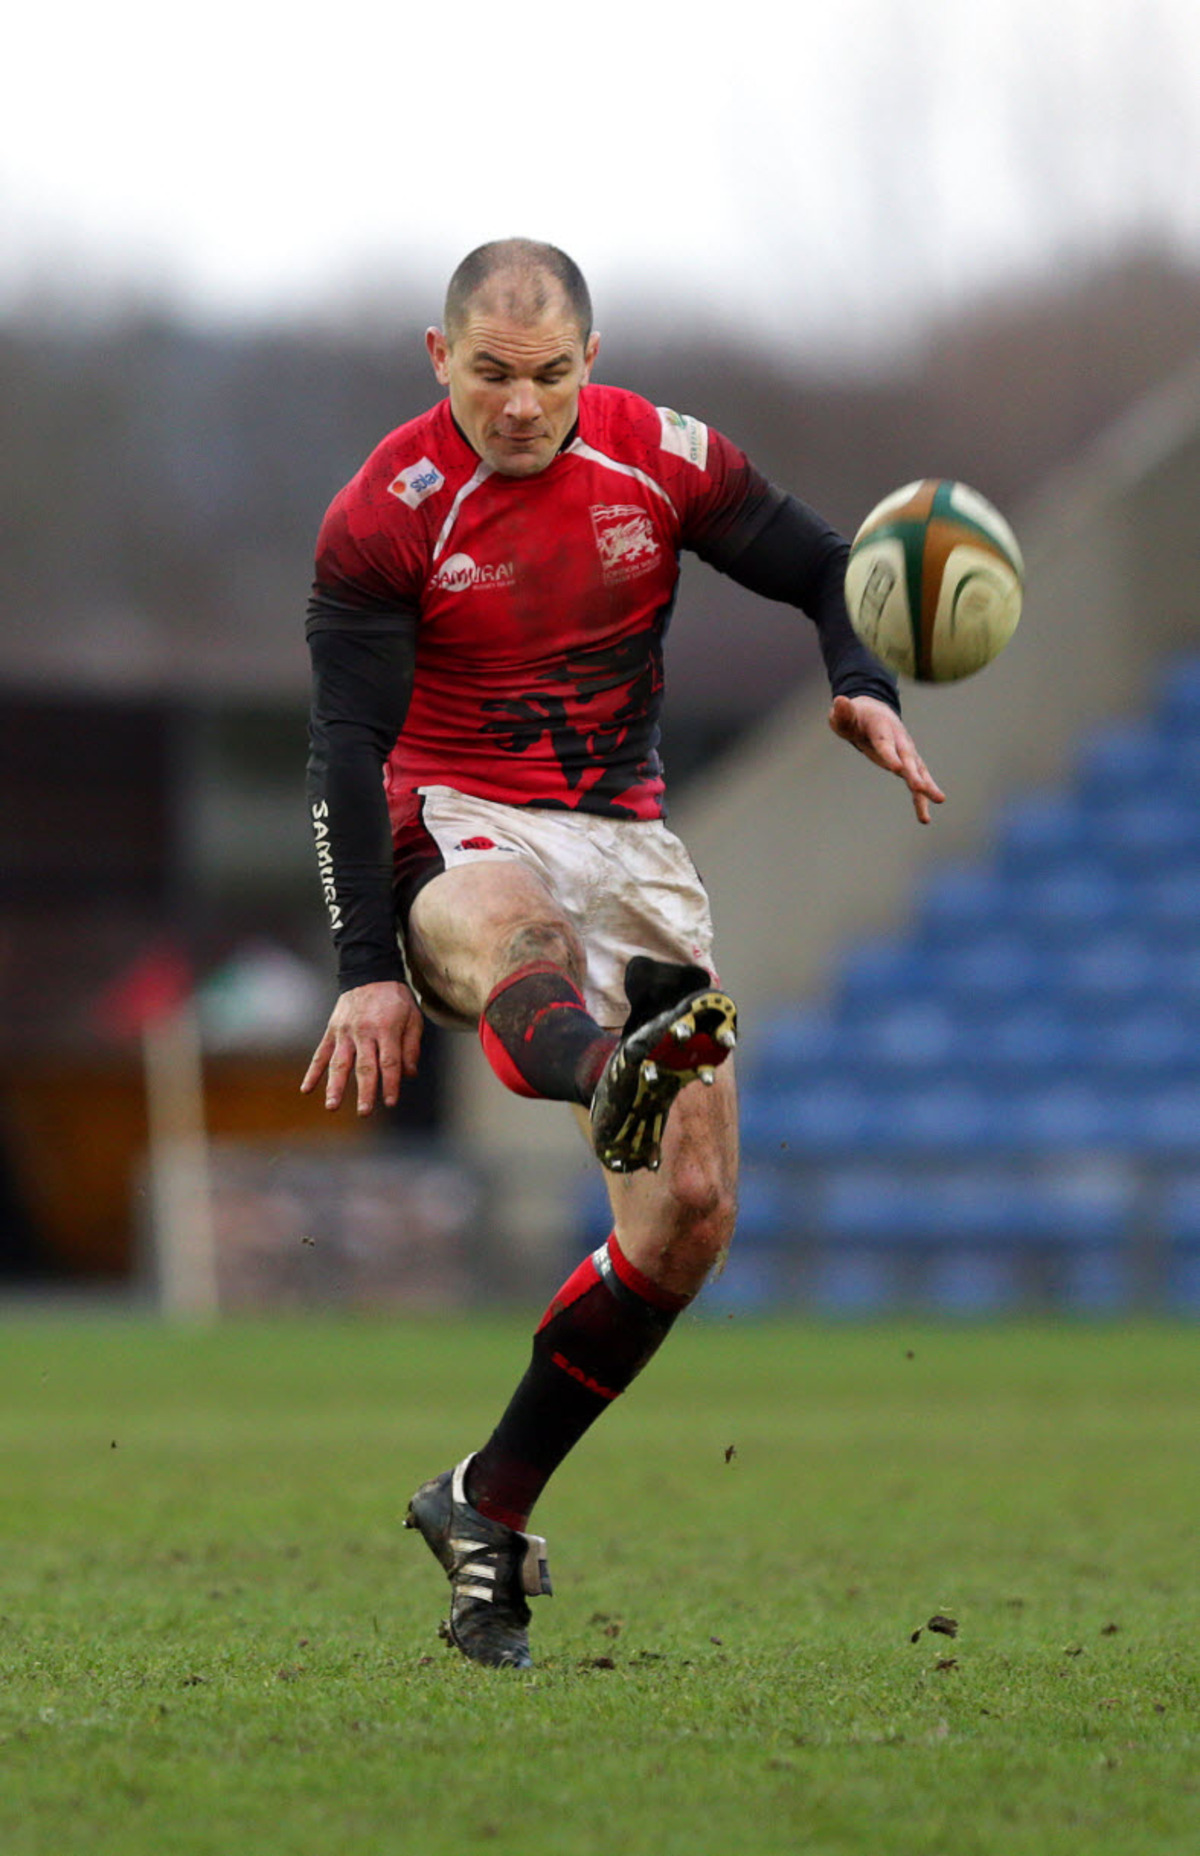 London Welsh's Gordon Ross boots the ball forward